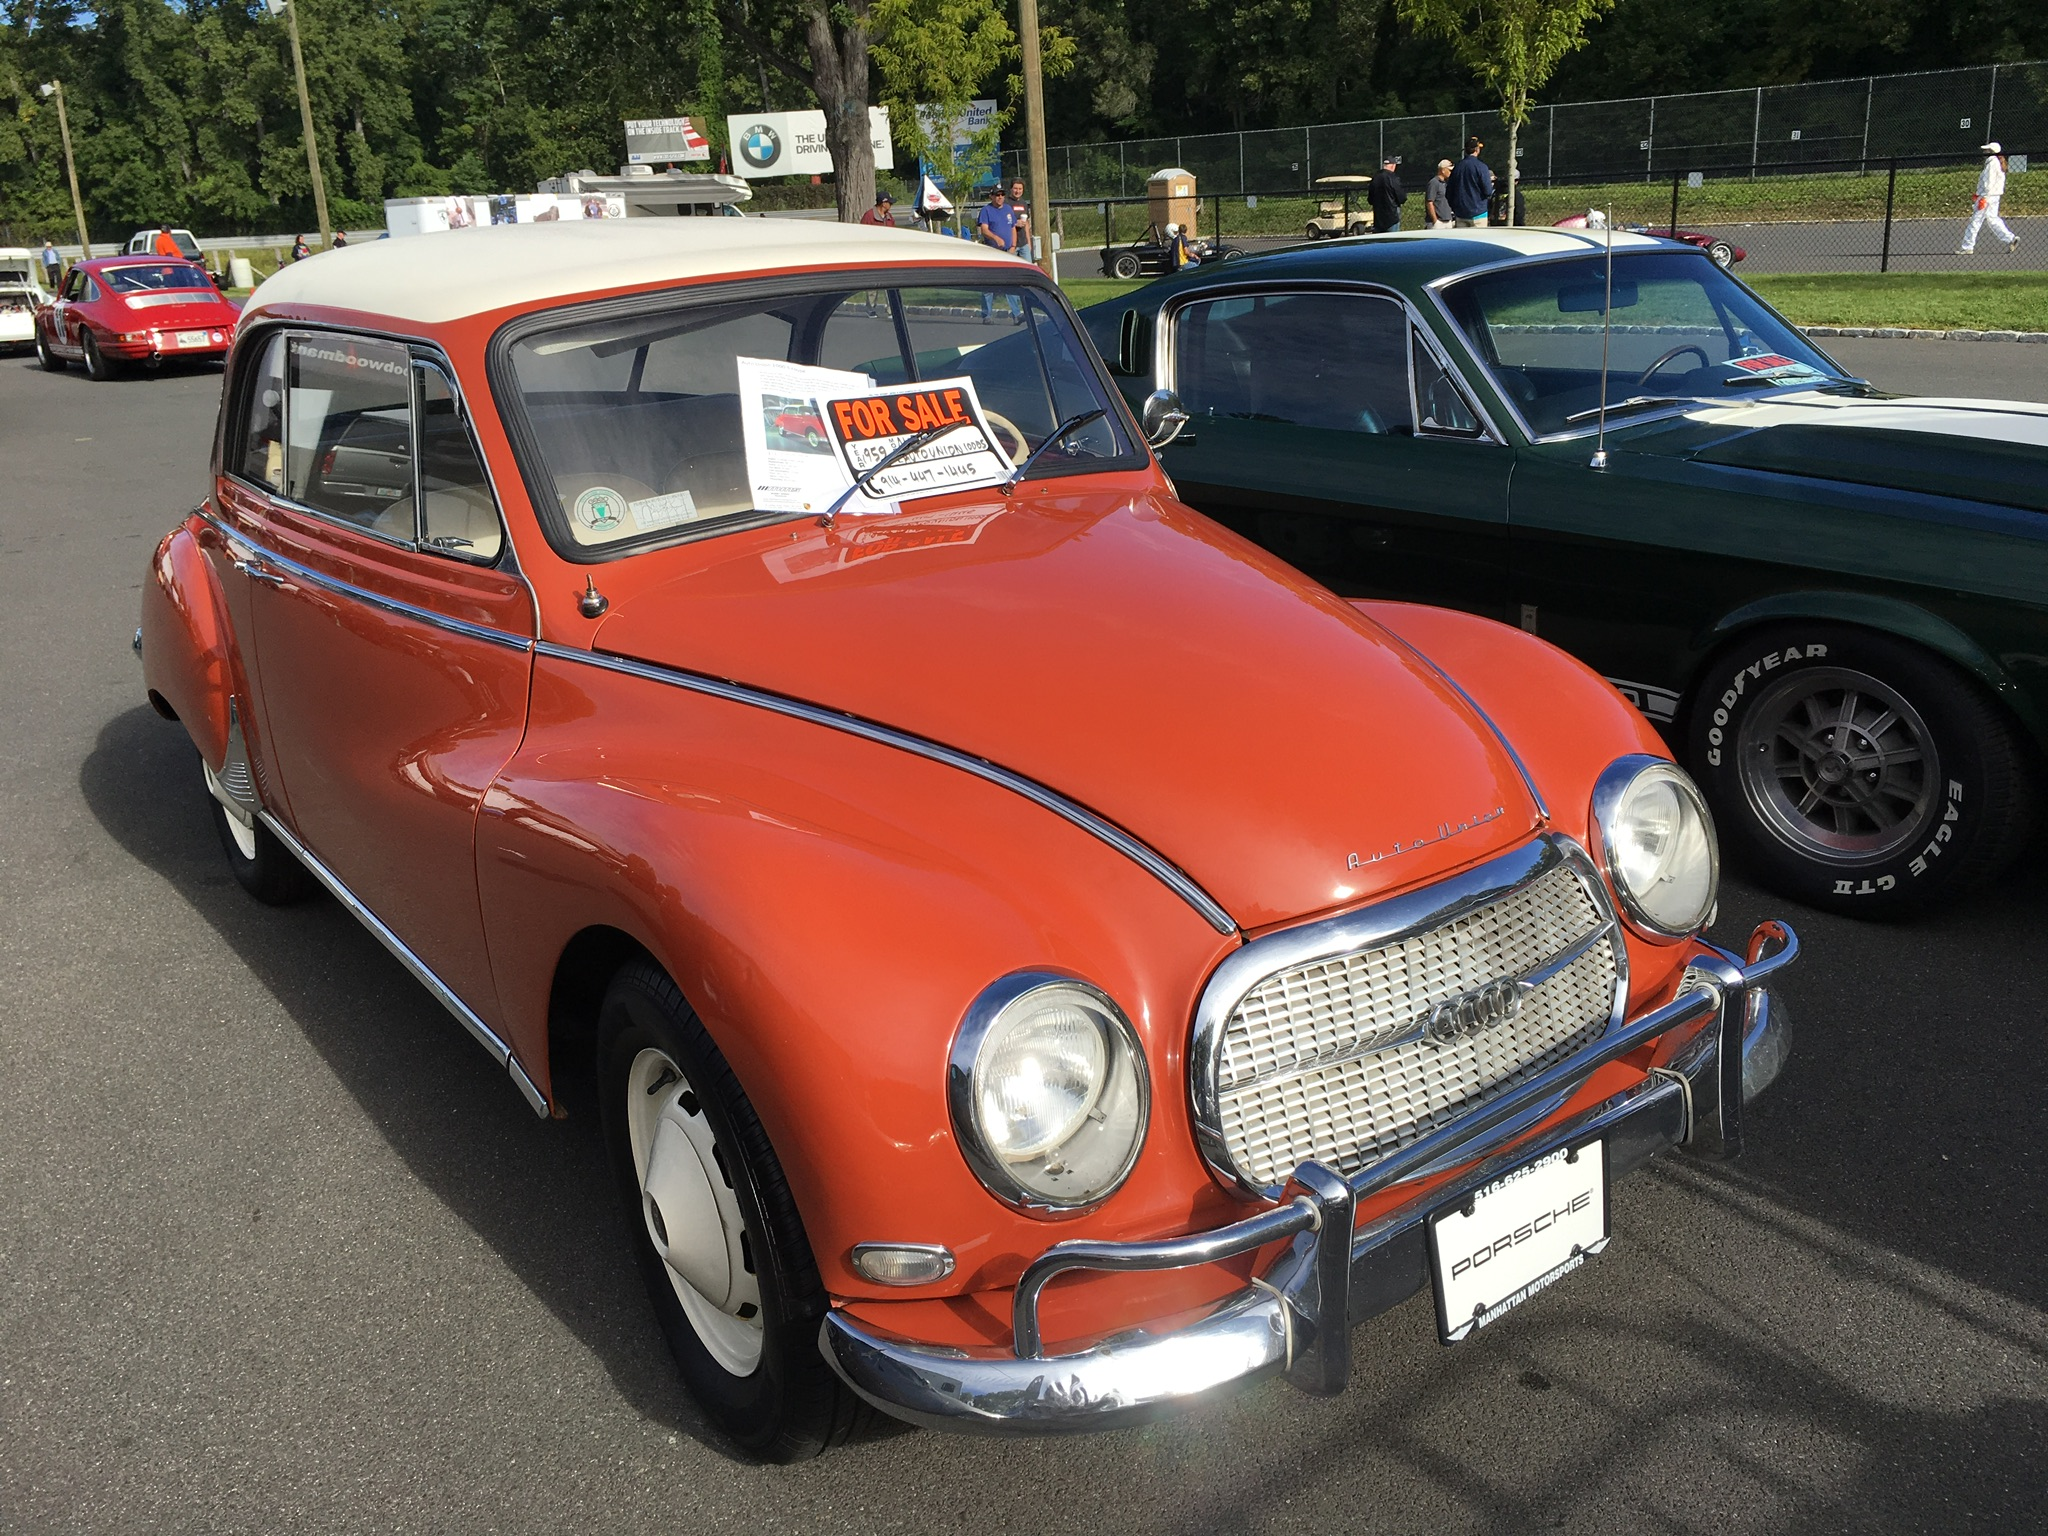 An Auto Union 1000 for sale